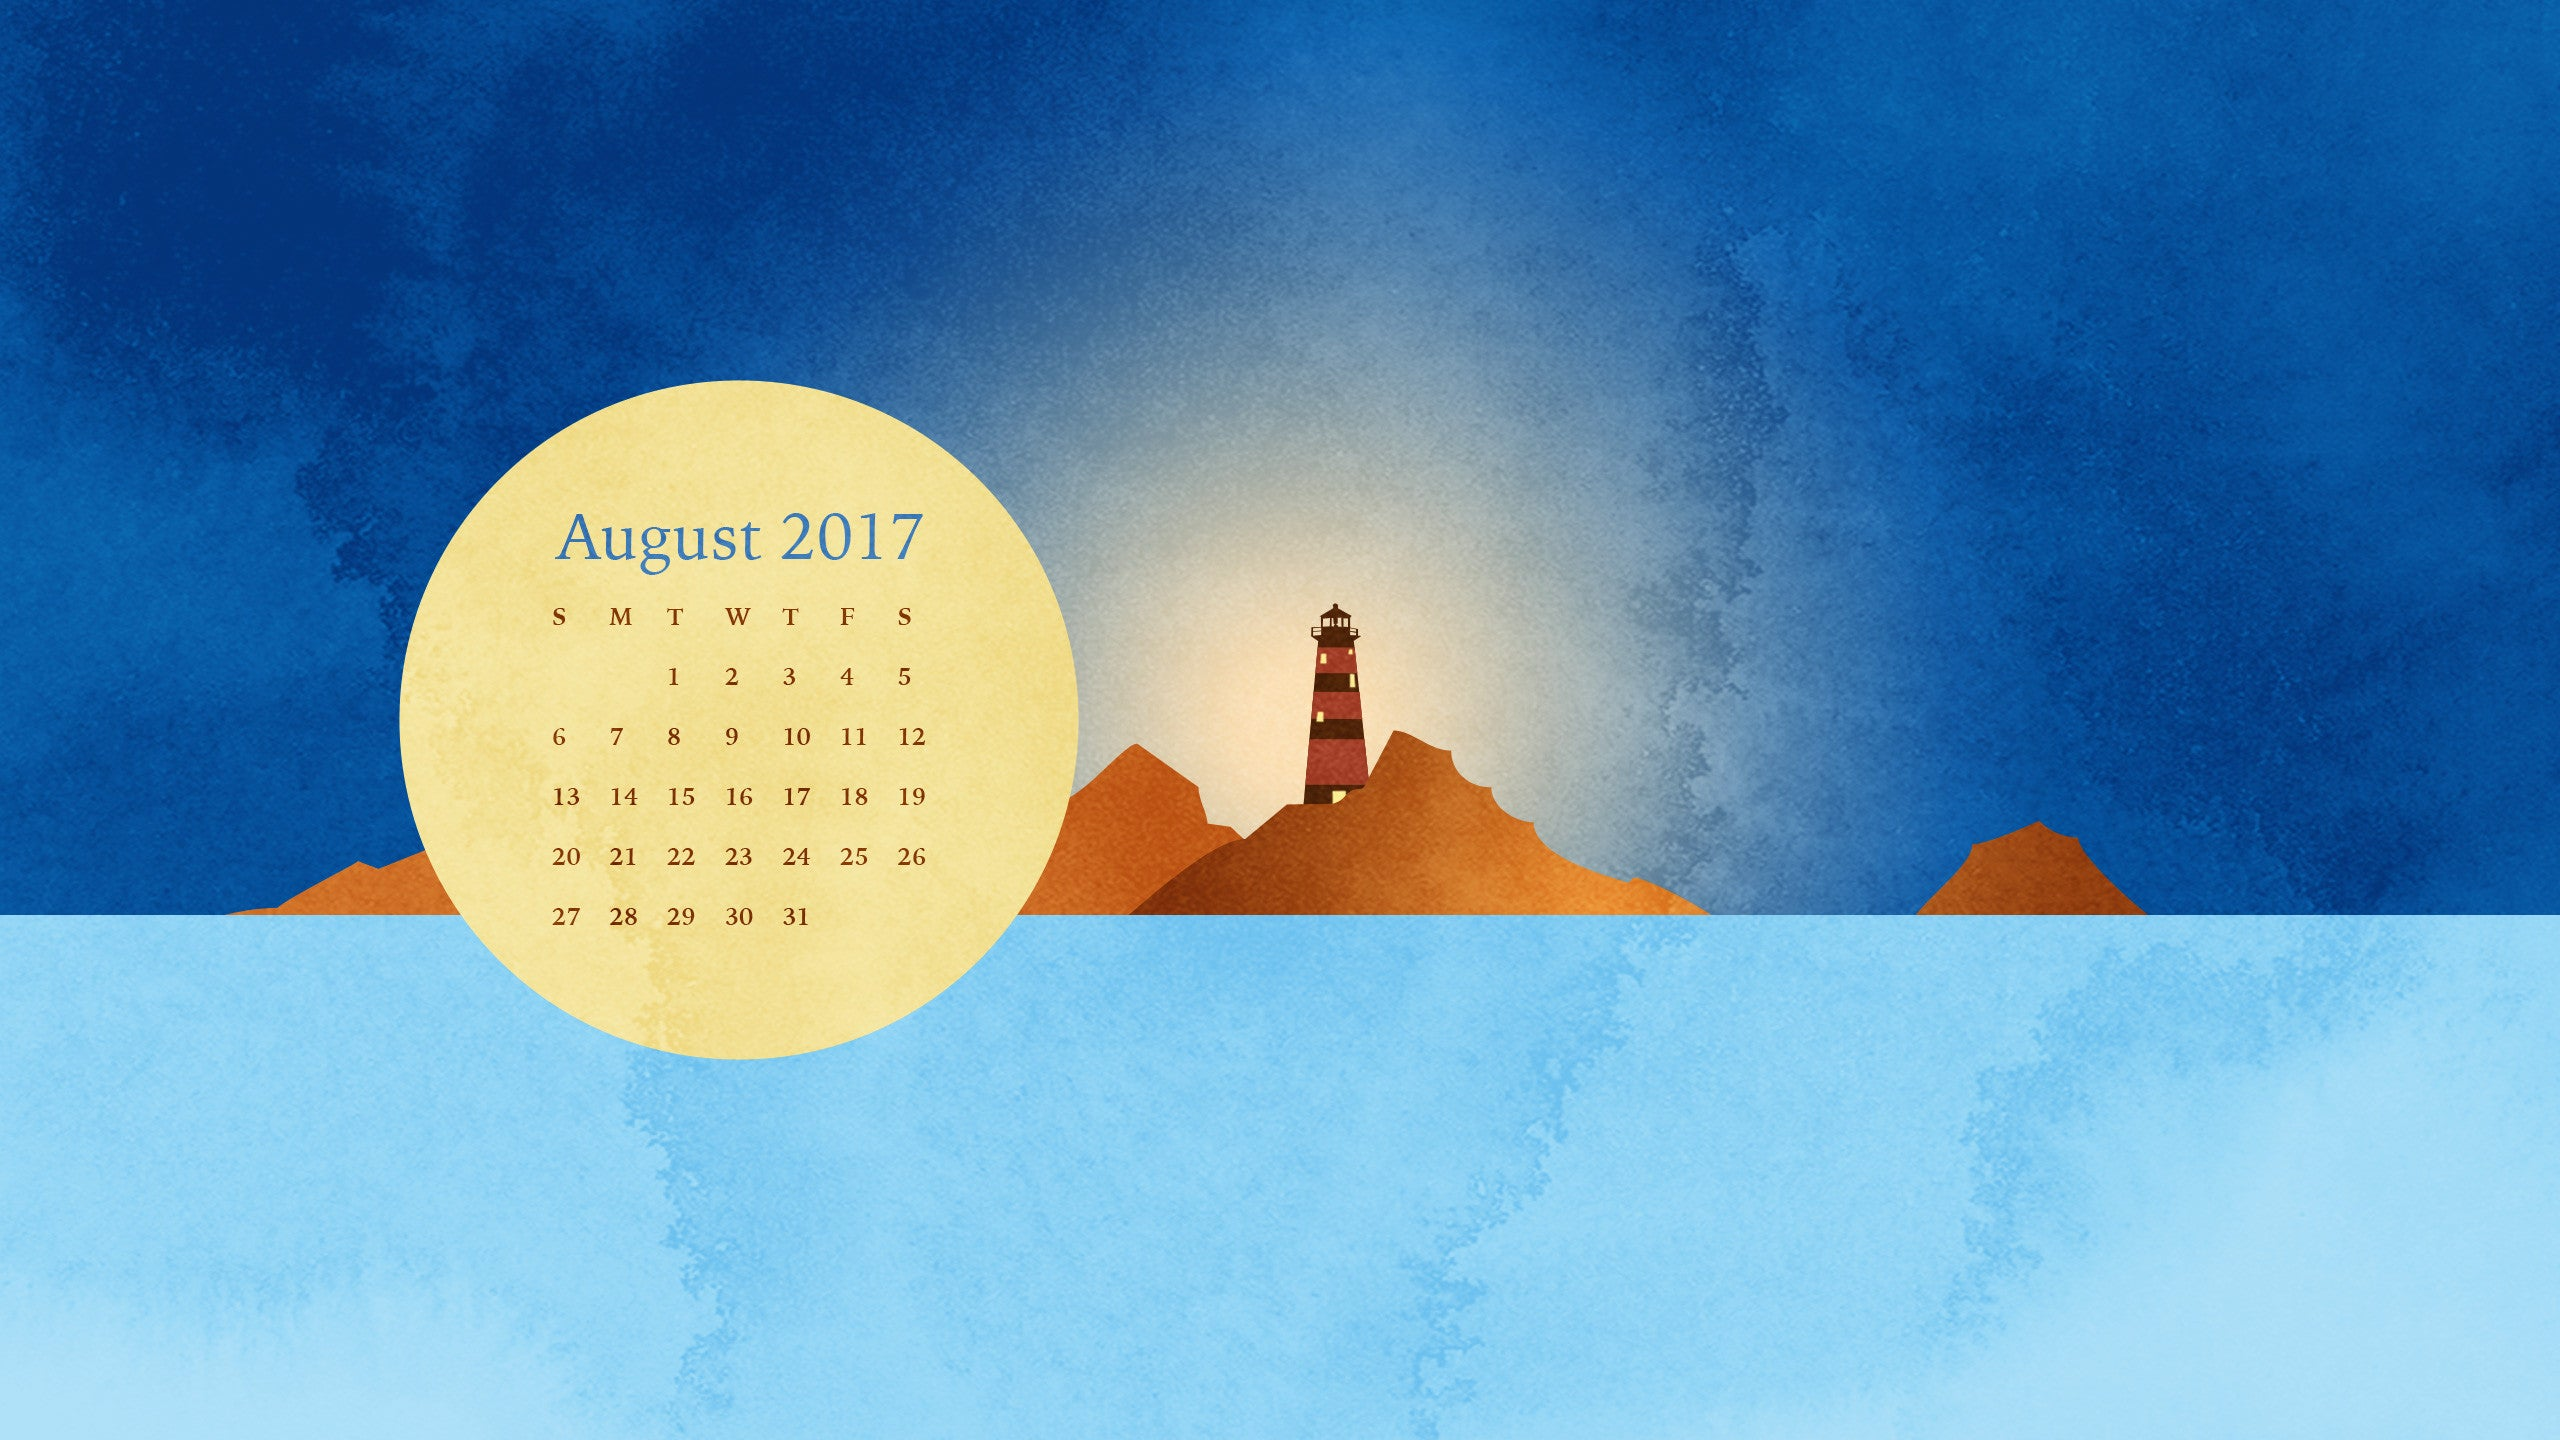 Calendar Wallpaper Maker : Free desktop calendar and smartphone background for august